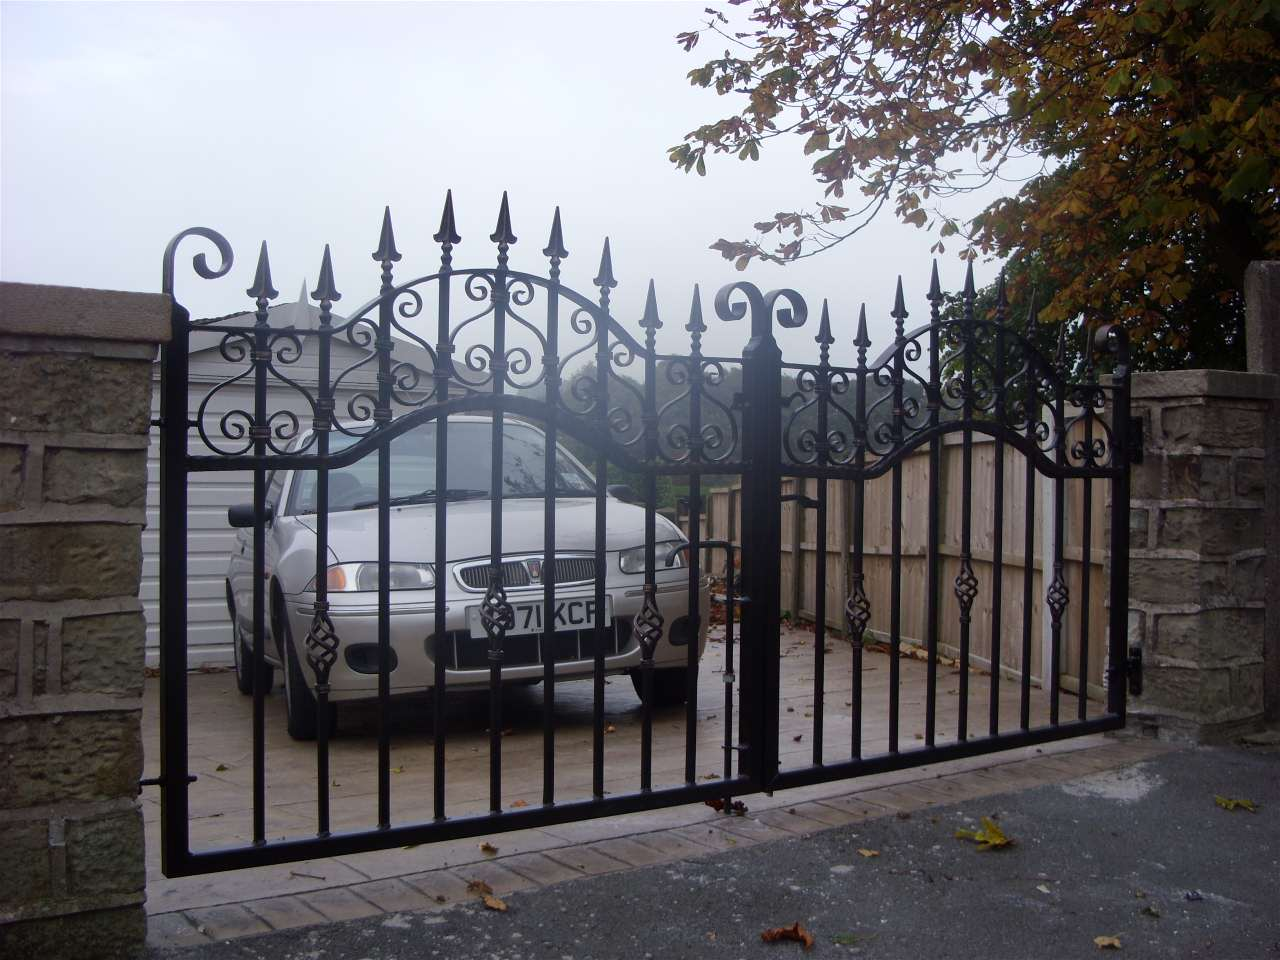 Wrought Iron Gates: Quality Wrought Iron Gates By TSB Ironcraft